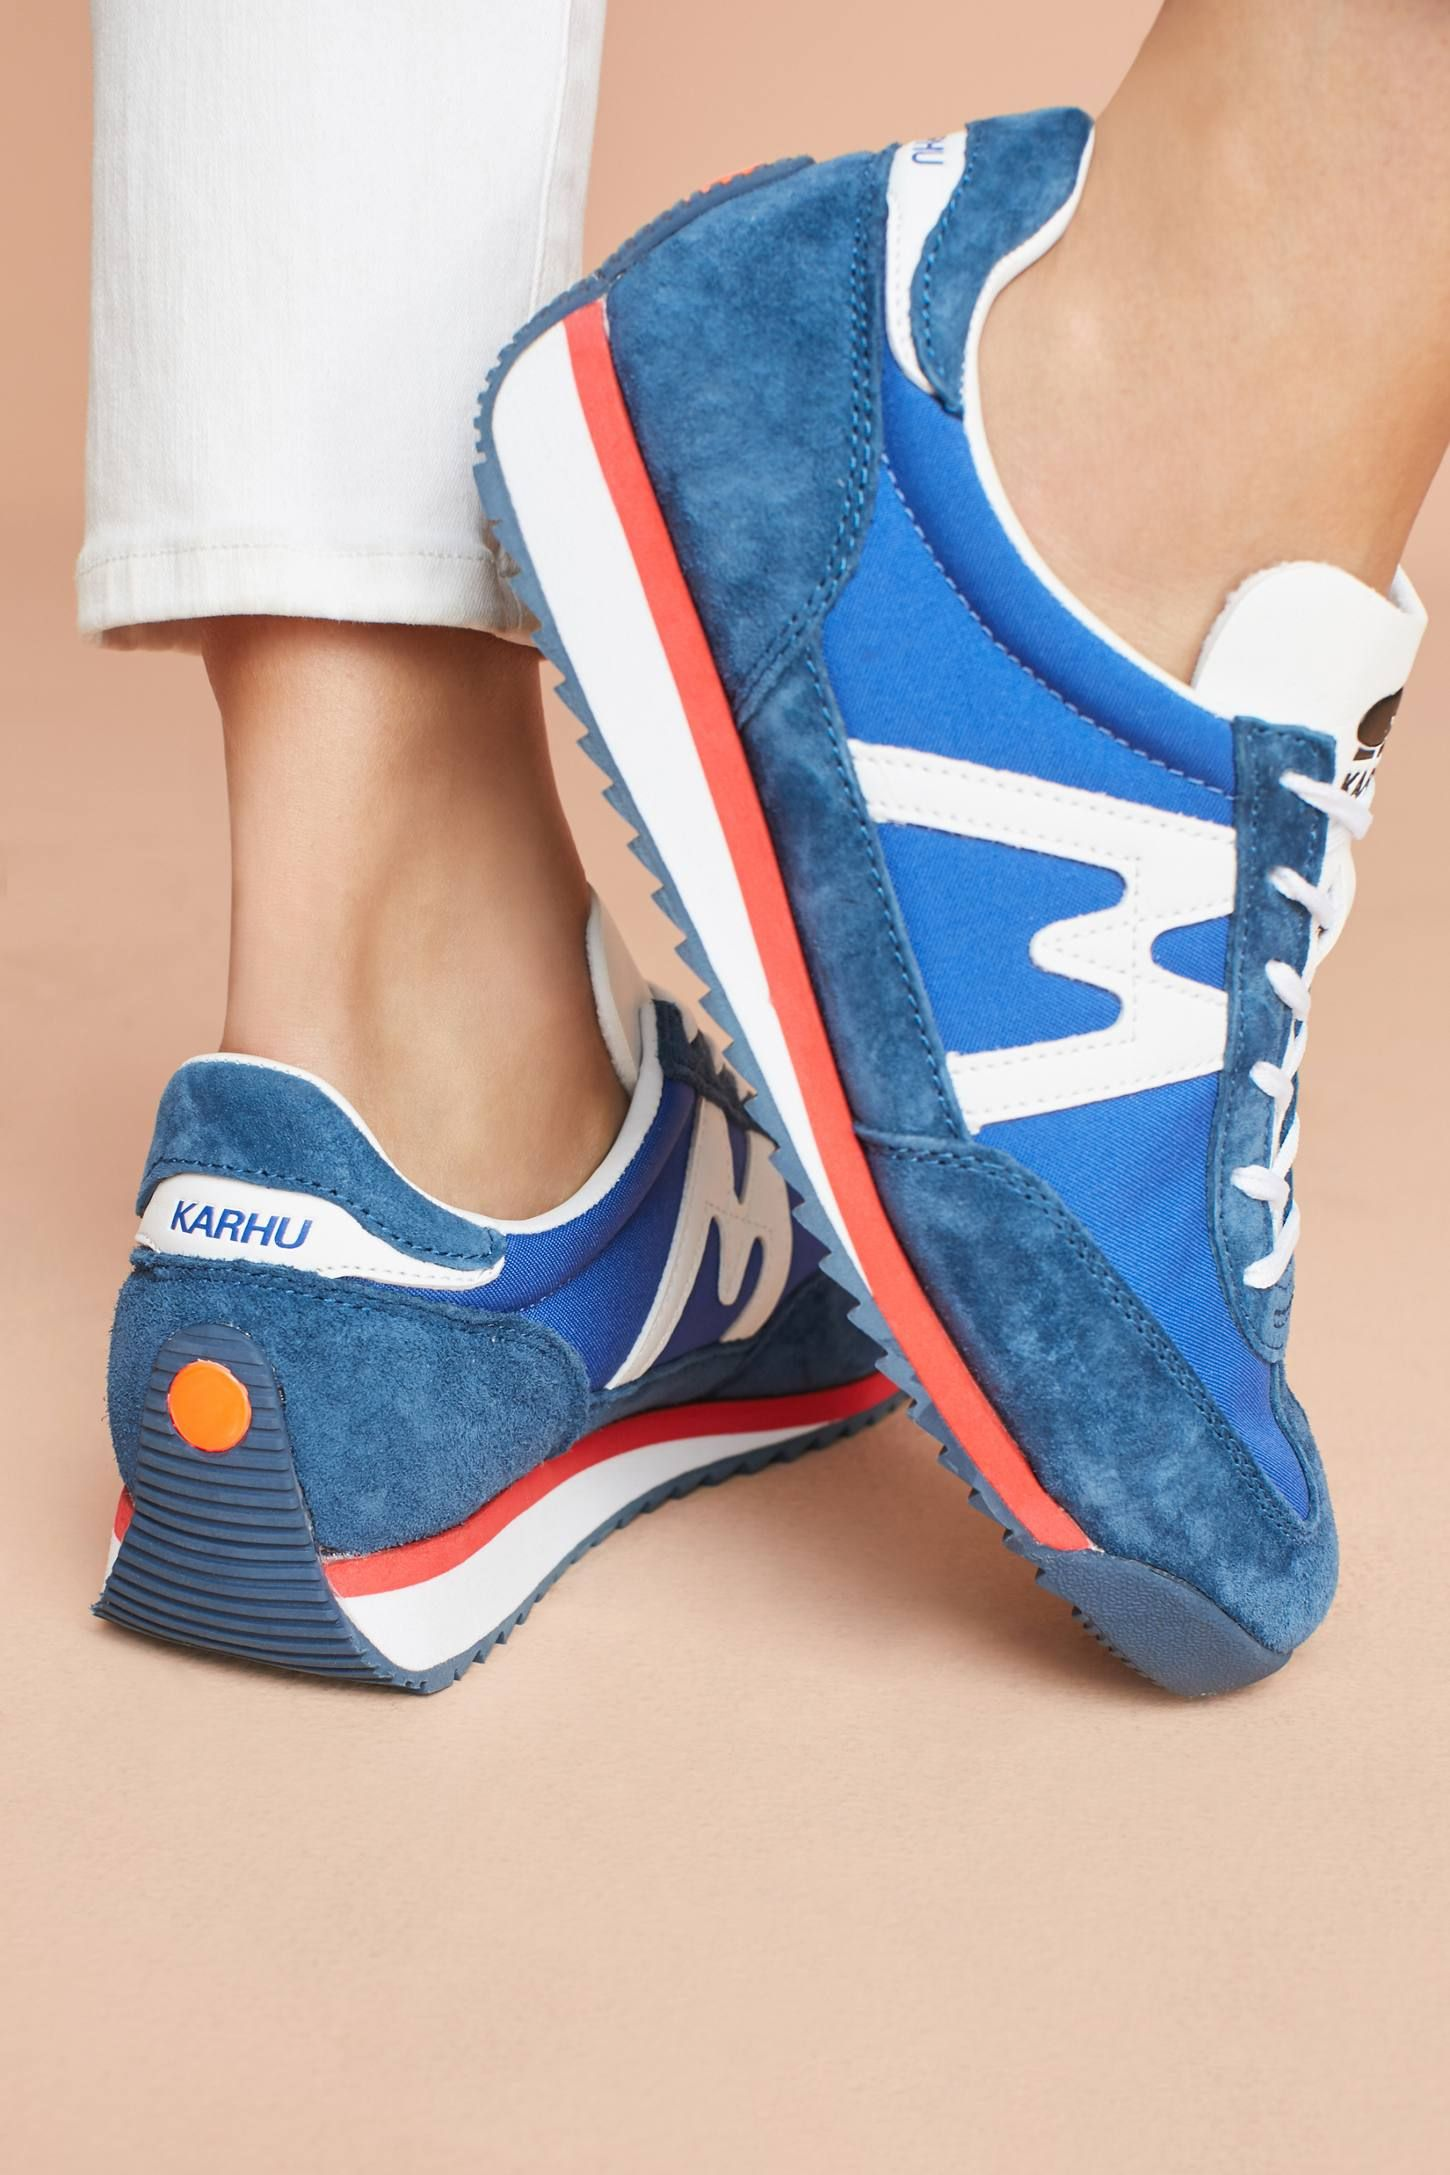 3d7c80b7f90c0 Shop the Karhu Championair Classic Sneakers and more Anthropologie at  Anthropologie today. Read customer reviews